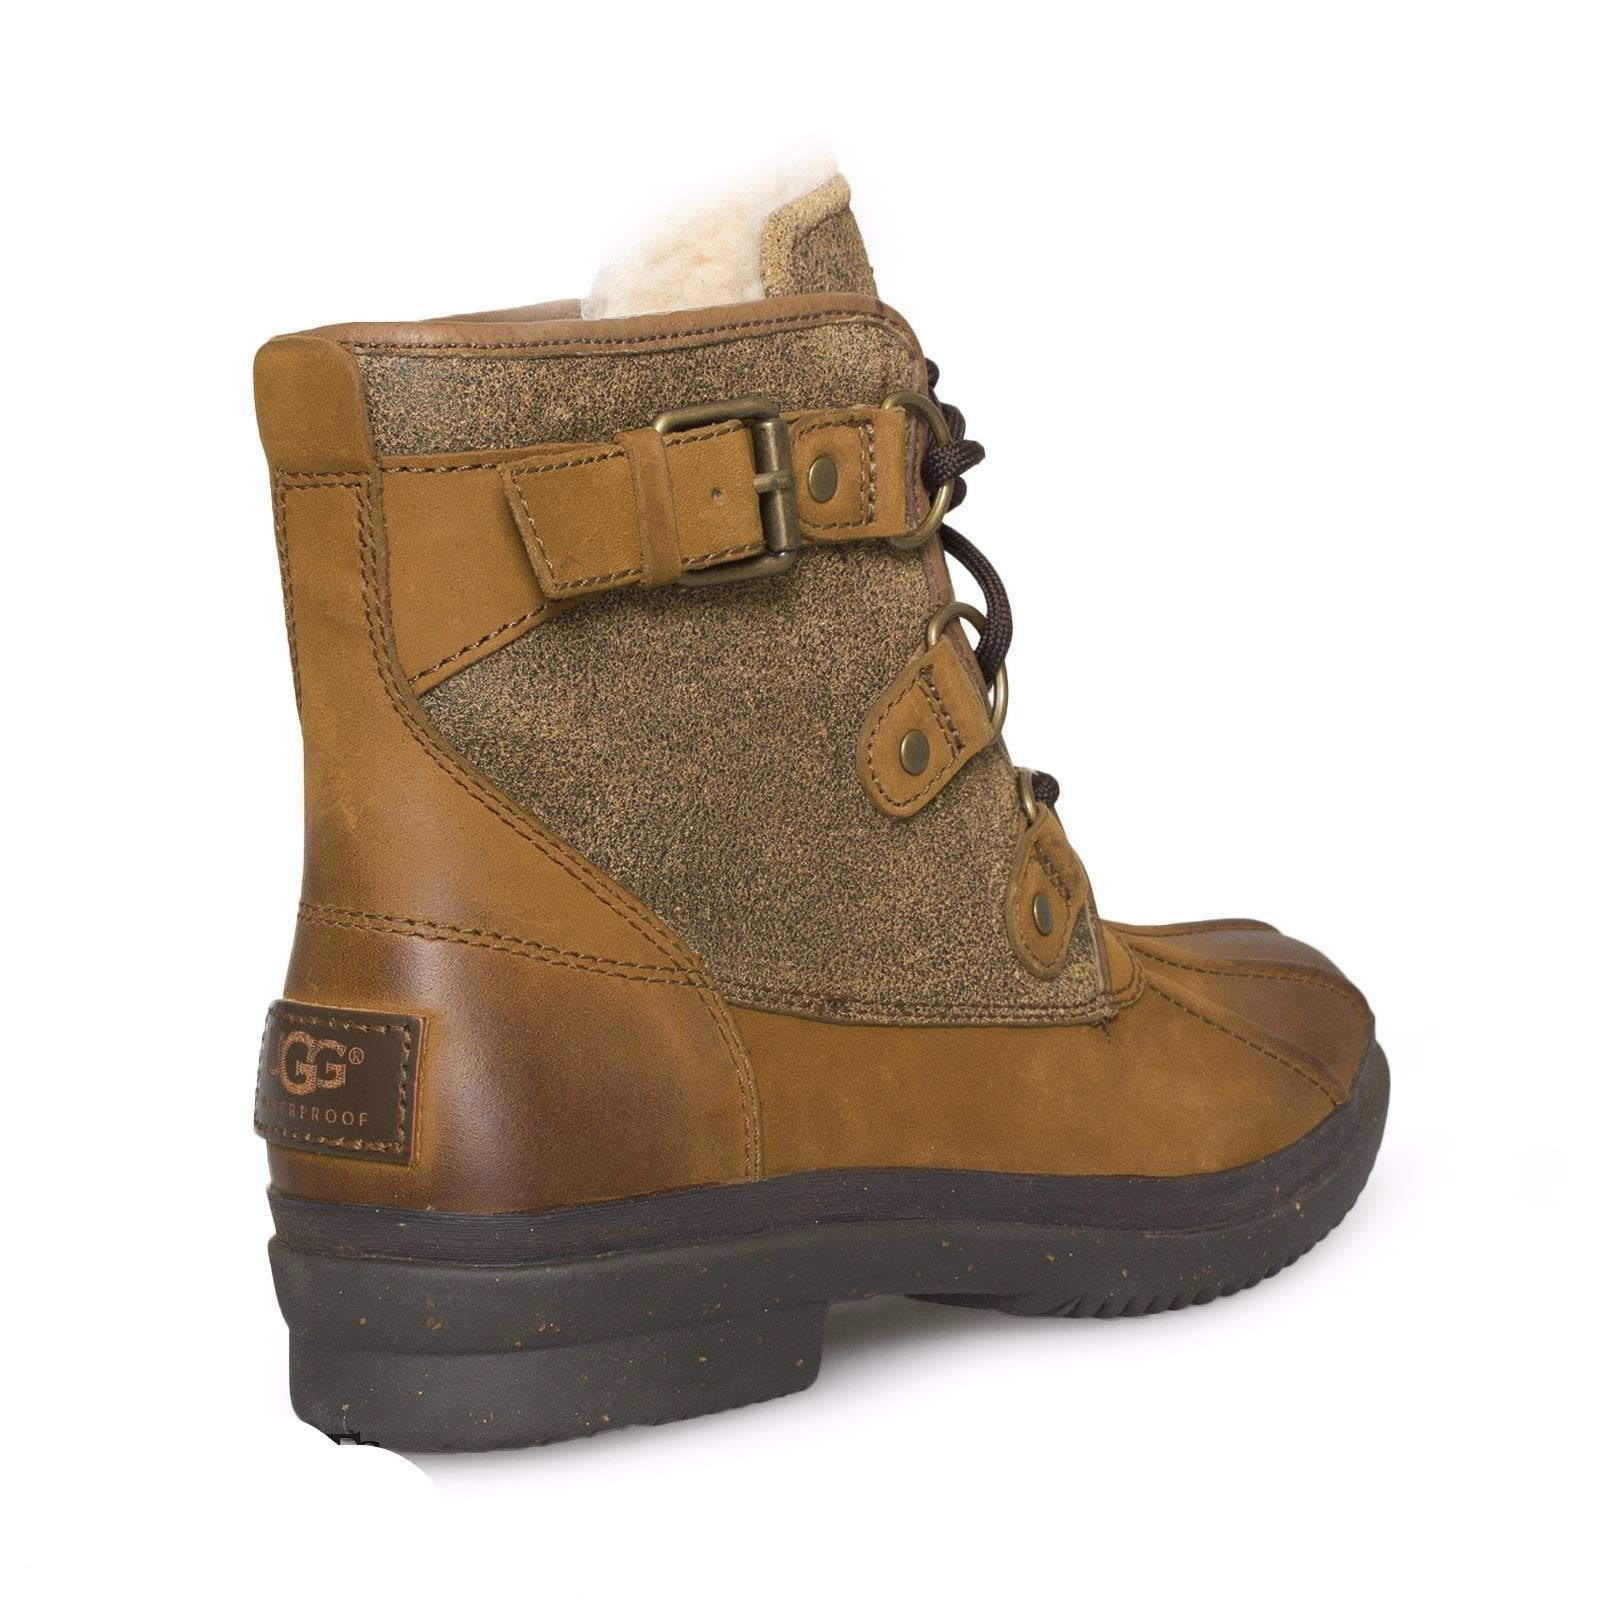 3439c0aa871 UGG Cecile Chestnut Boots